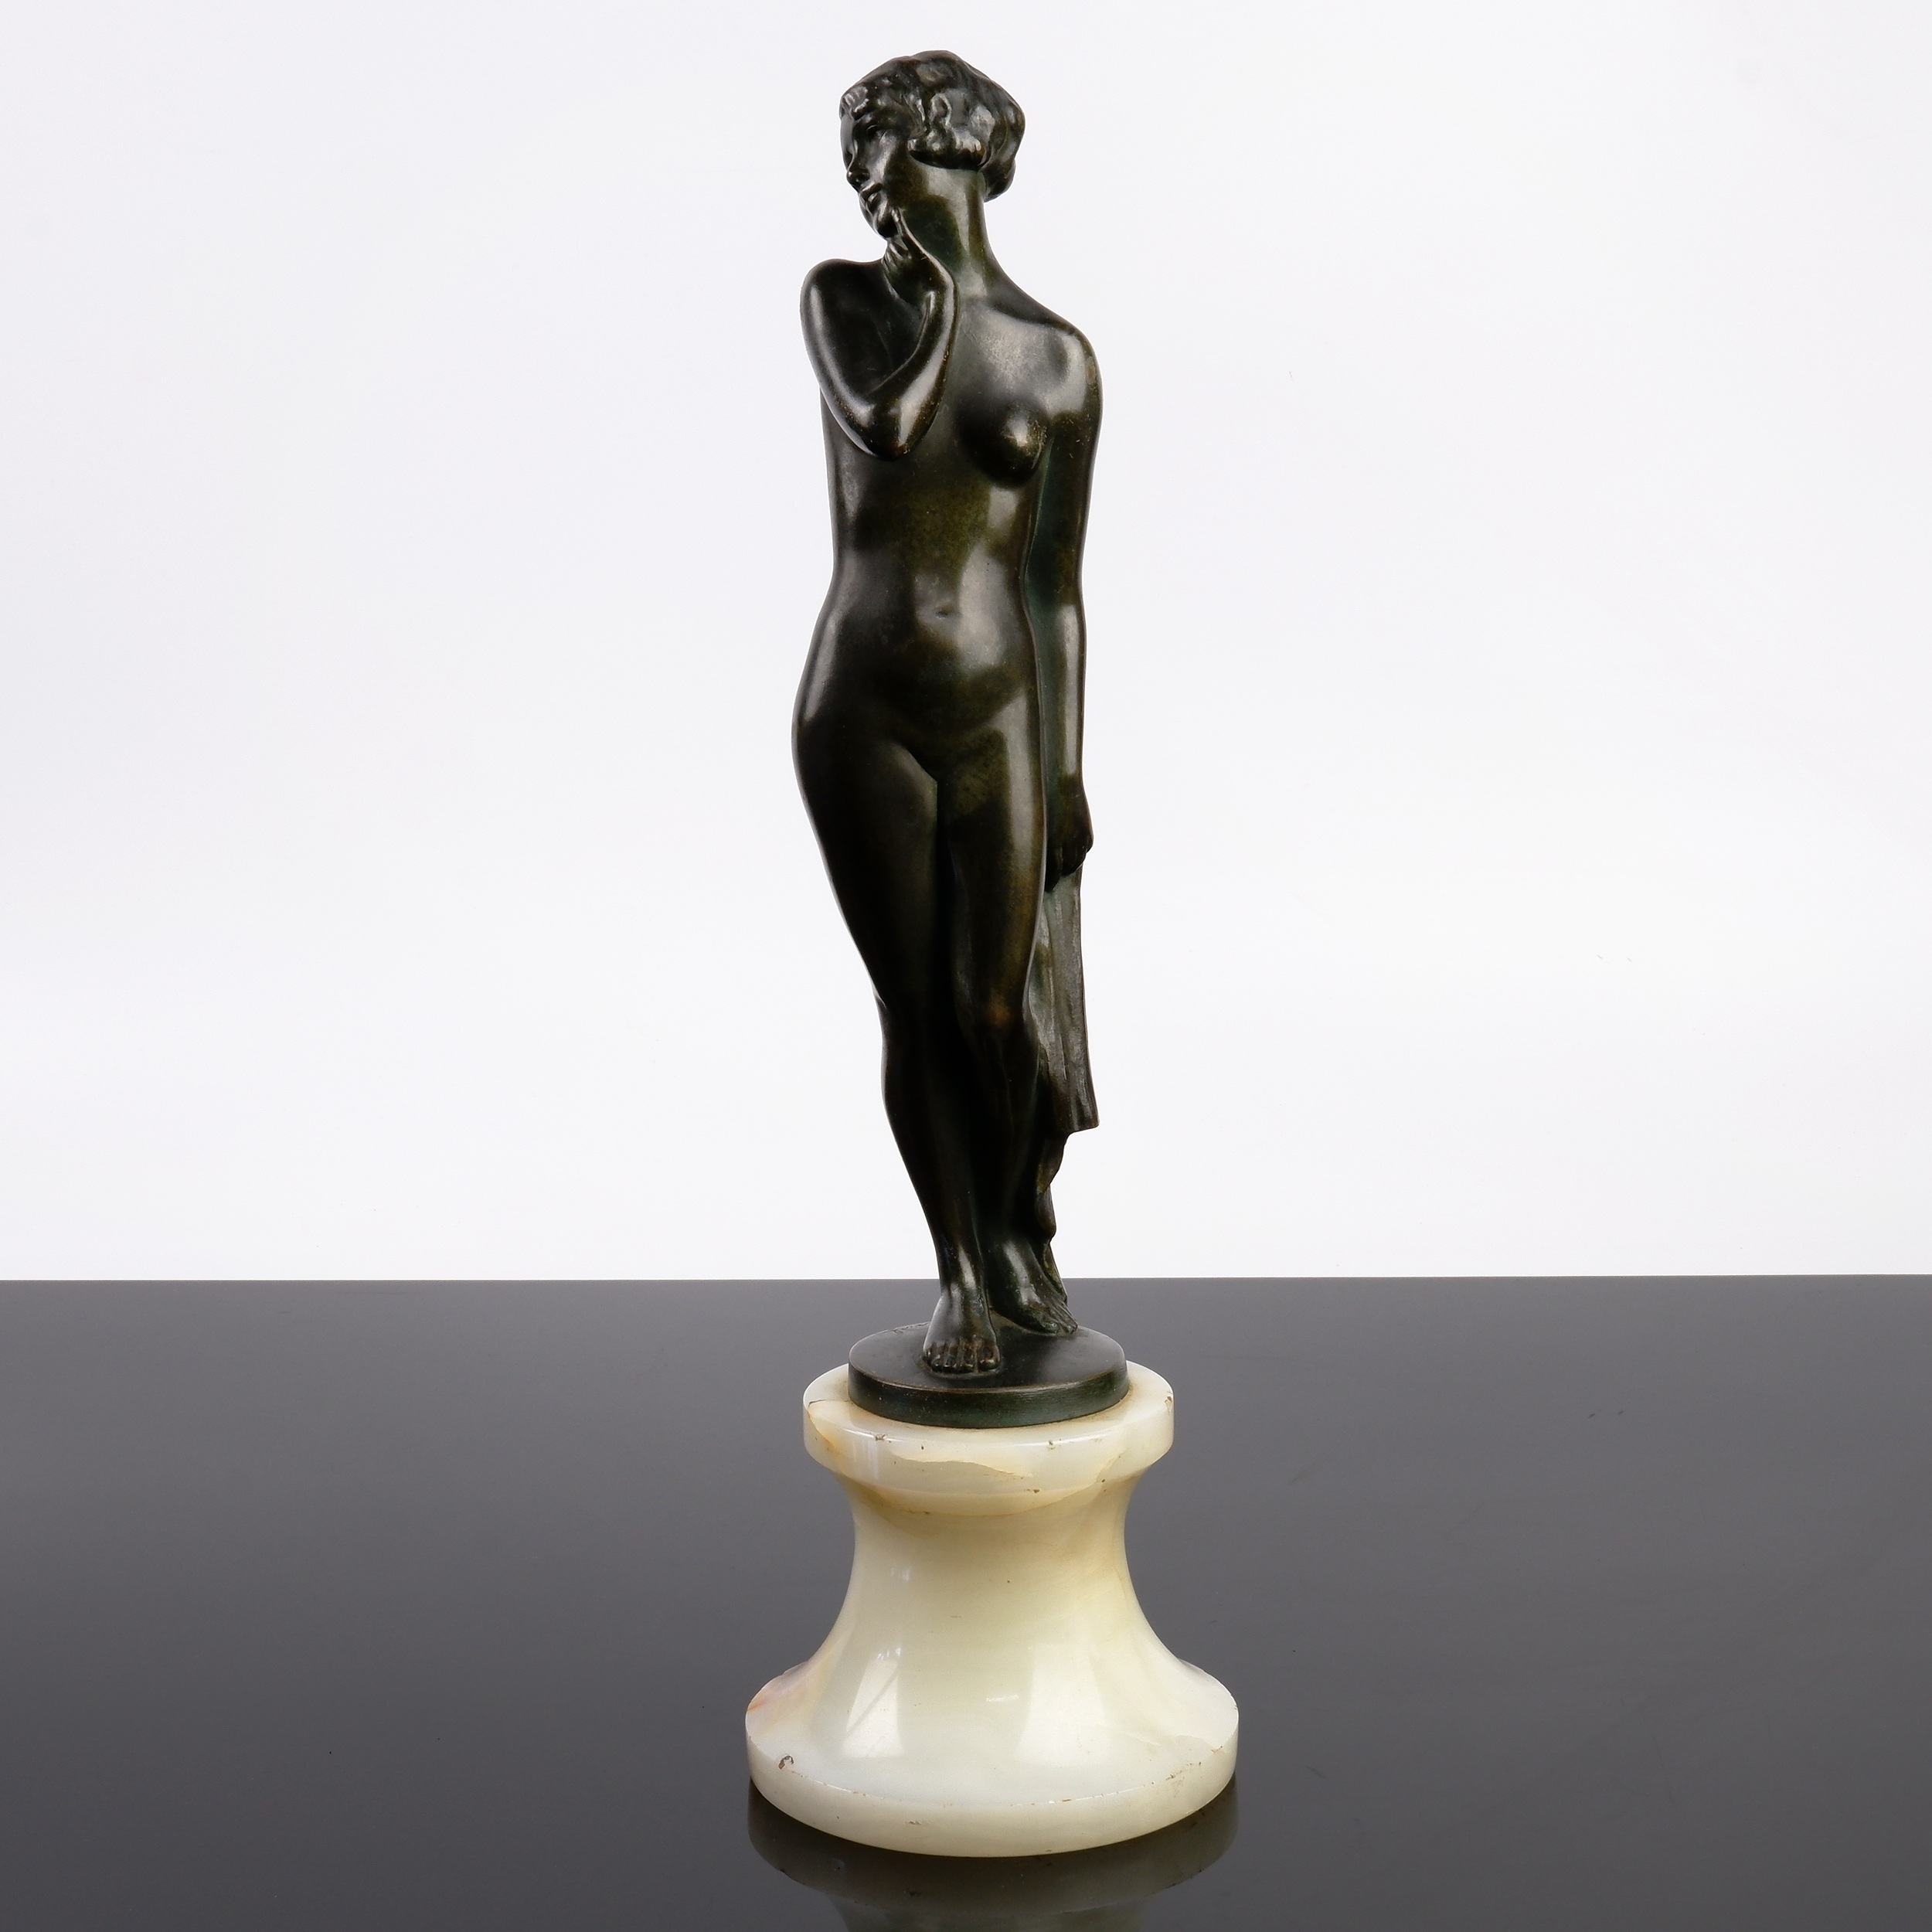 'Josef Lorenzl (Austrian 1892-1950) Naked Maiden, Bronze on an Onyx Socle'